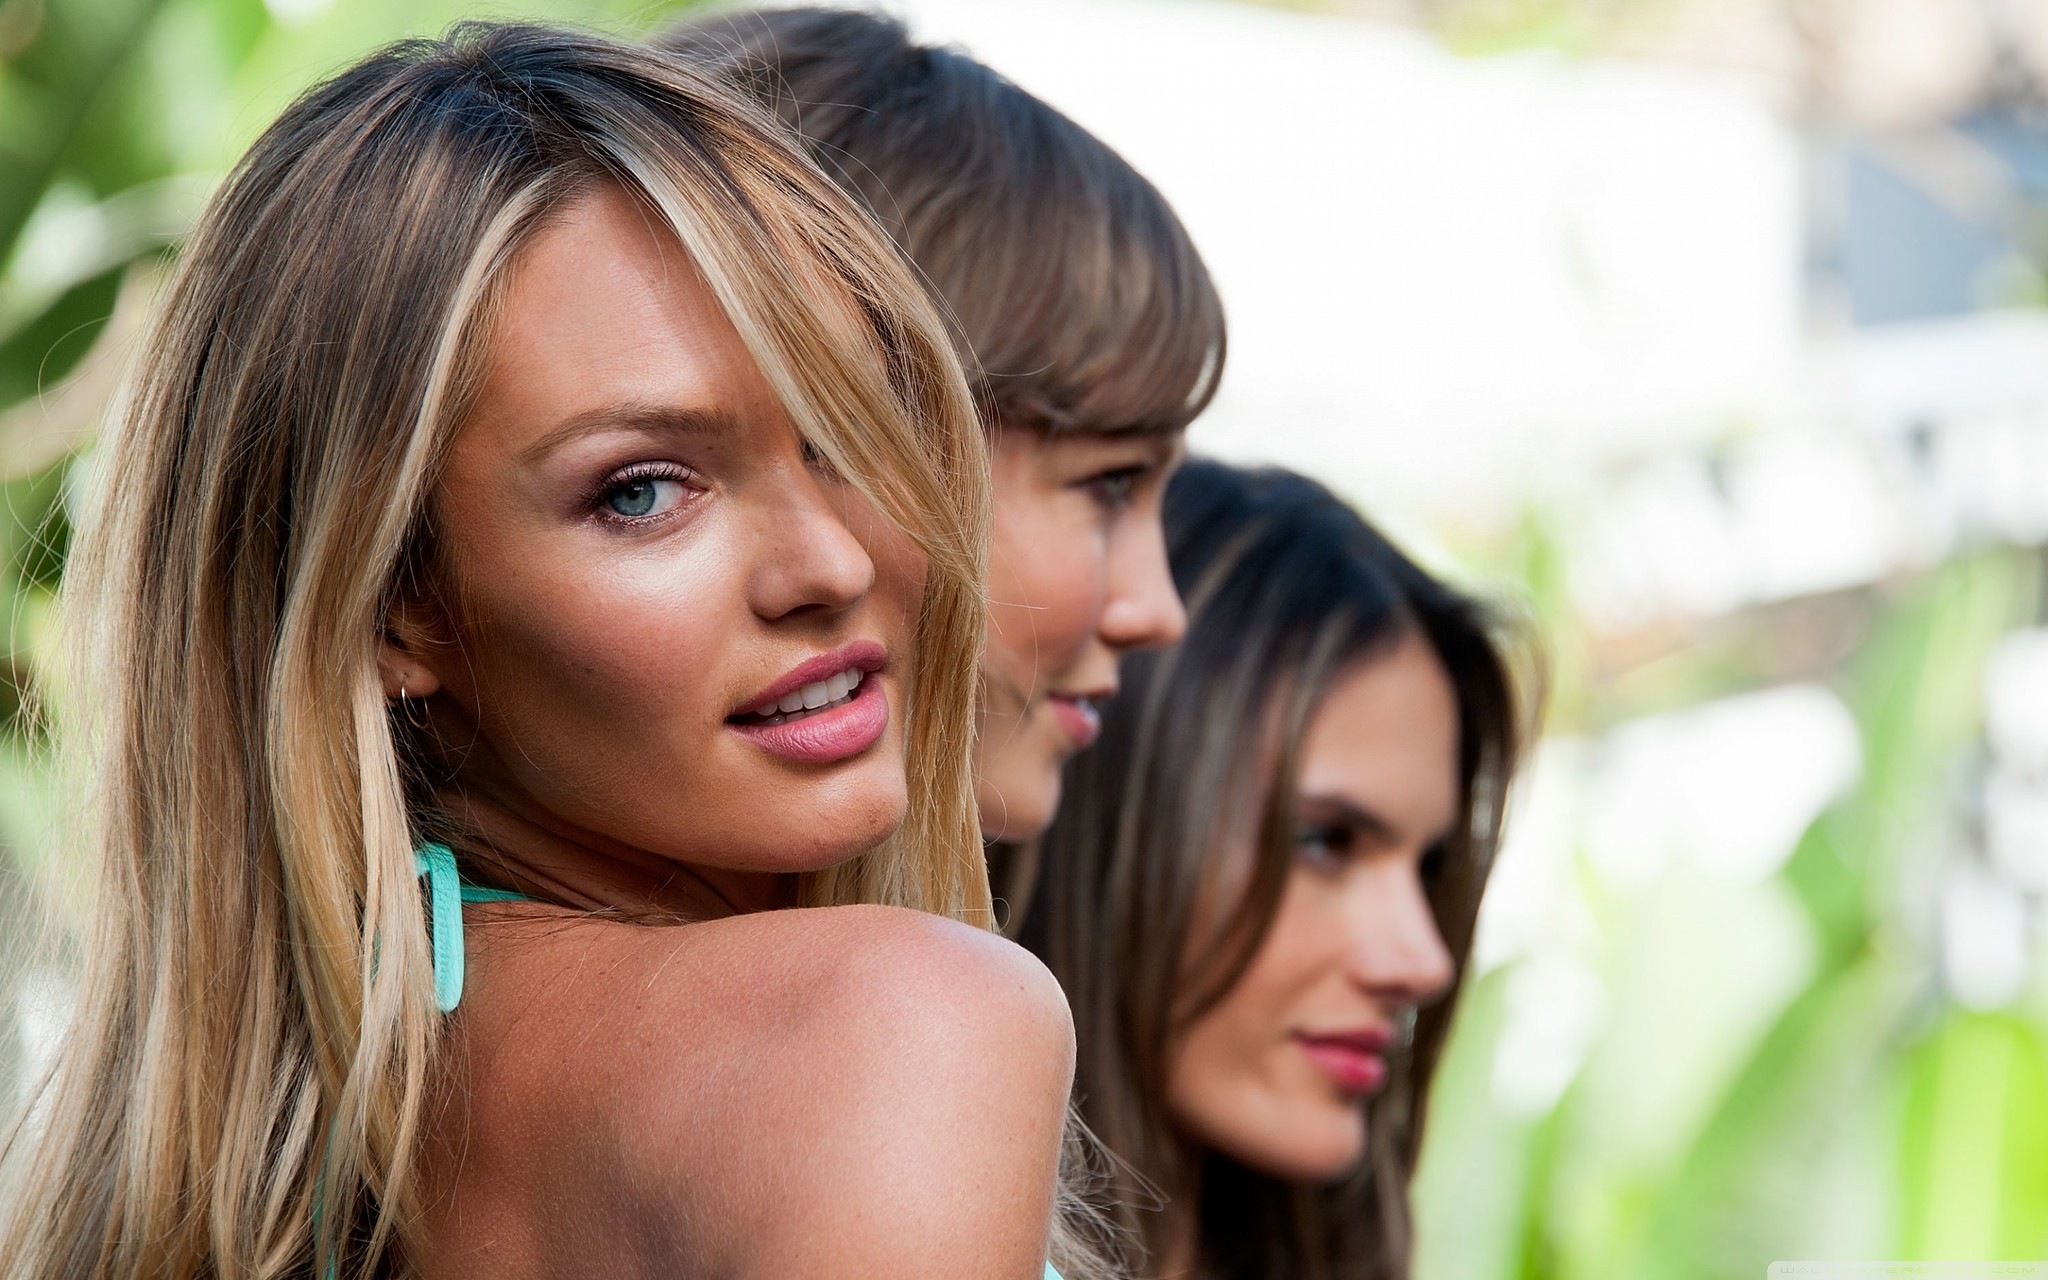 Modelo Candice Swanepoel, da Victoria's Secret (Foto: Flickr/ Kou Art)